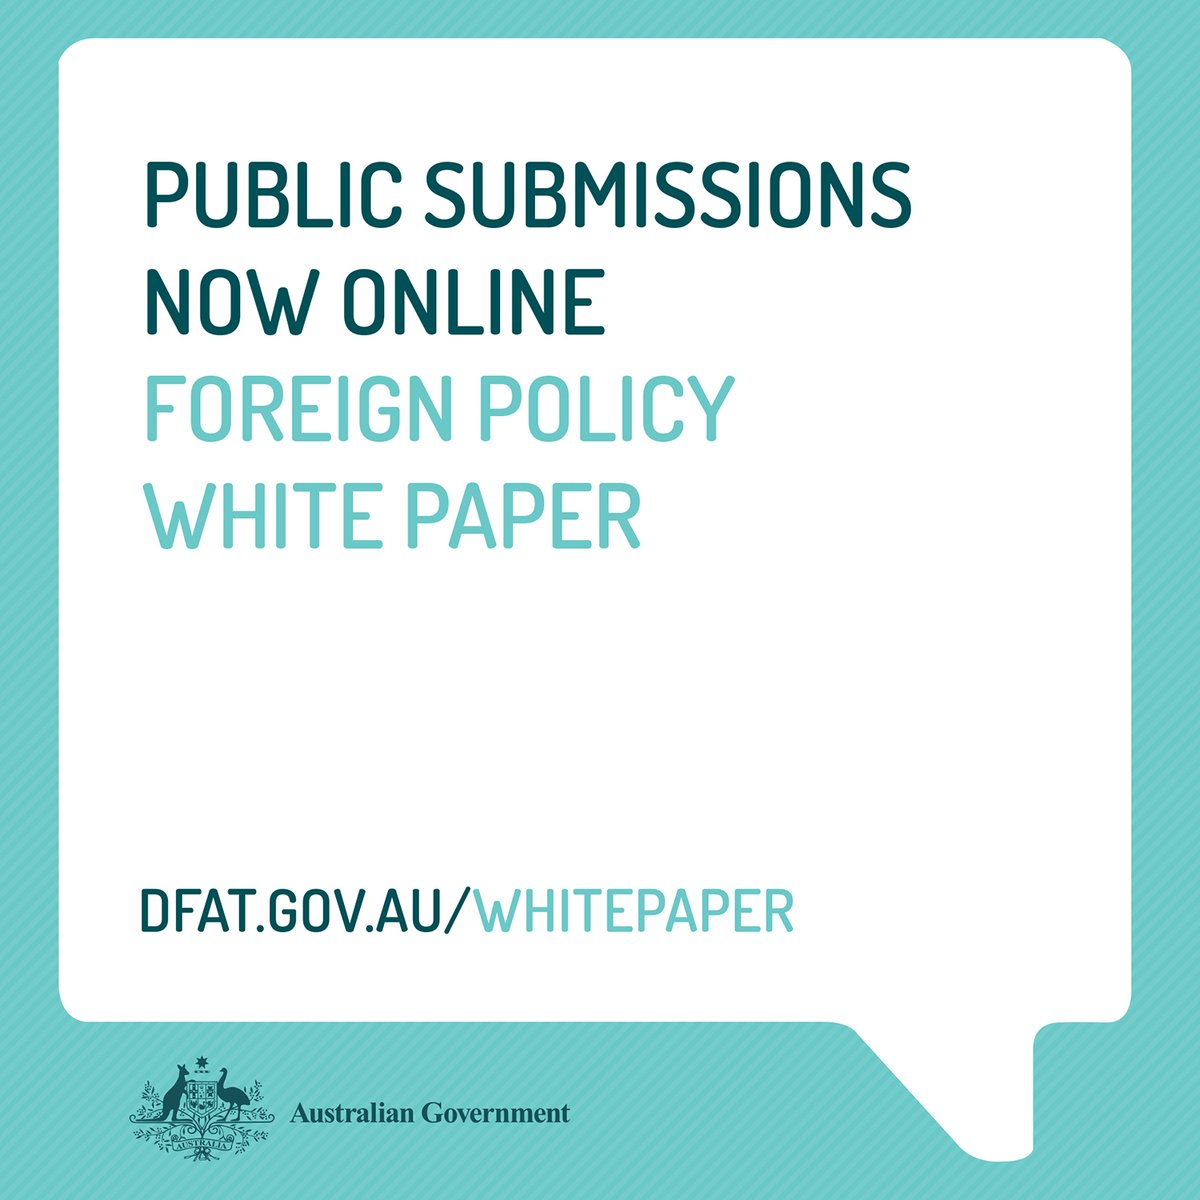 FP White Paper submissions now online